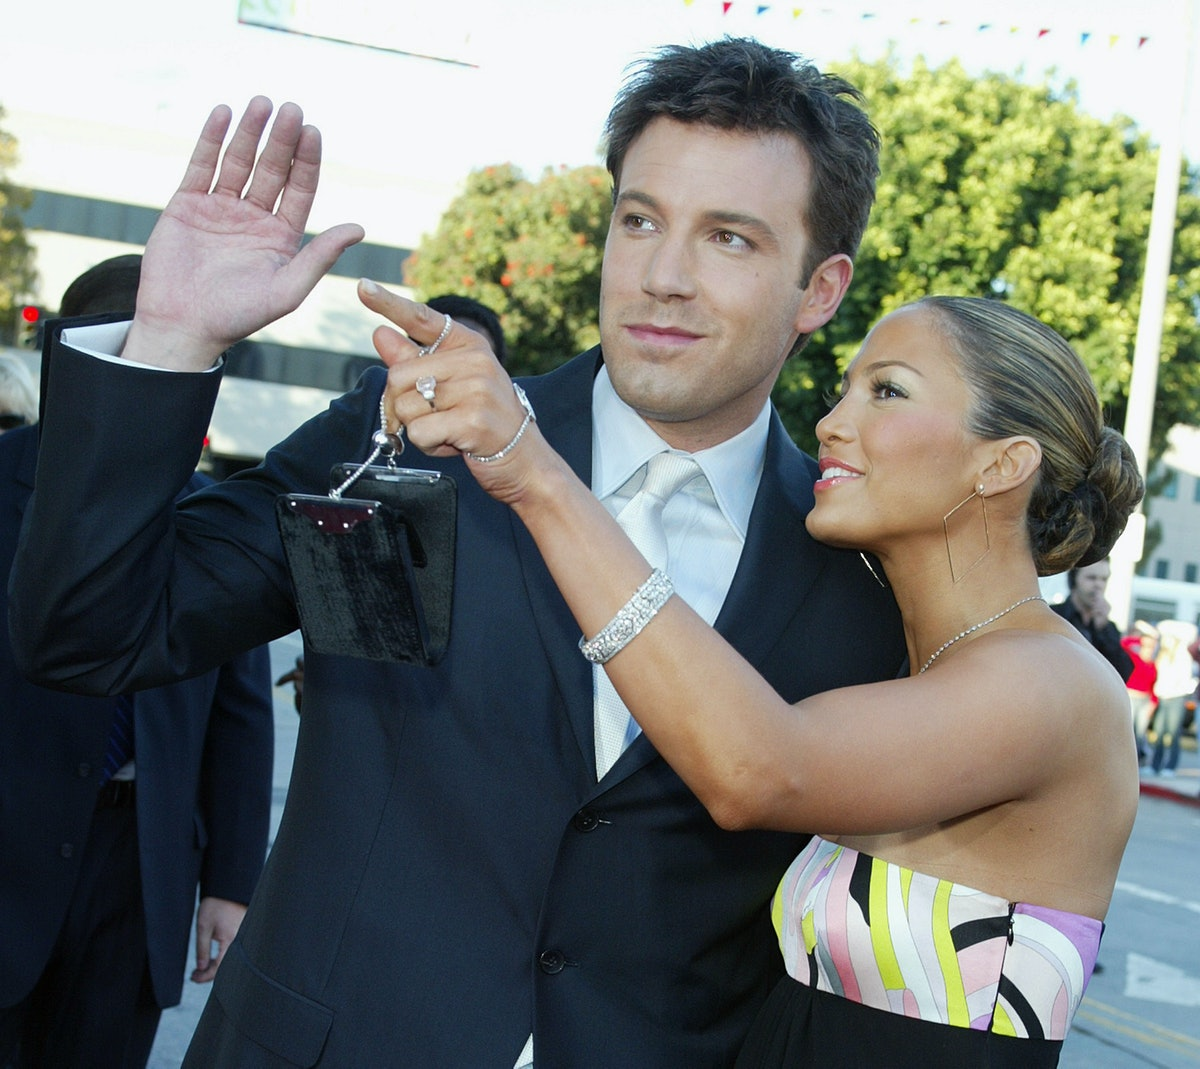 """LOS ANGELES - FEBRUARY 9:  Actor Ben Affleck (L) and his fiance actress/singer Jennifer Lopez arrive at the premiere of """"Daredevil"""" at the Village Theatre on February 9, 2003 in Los Angeles, California. (Photo by Kevin Winter/Getty Images)"""